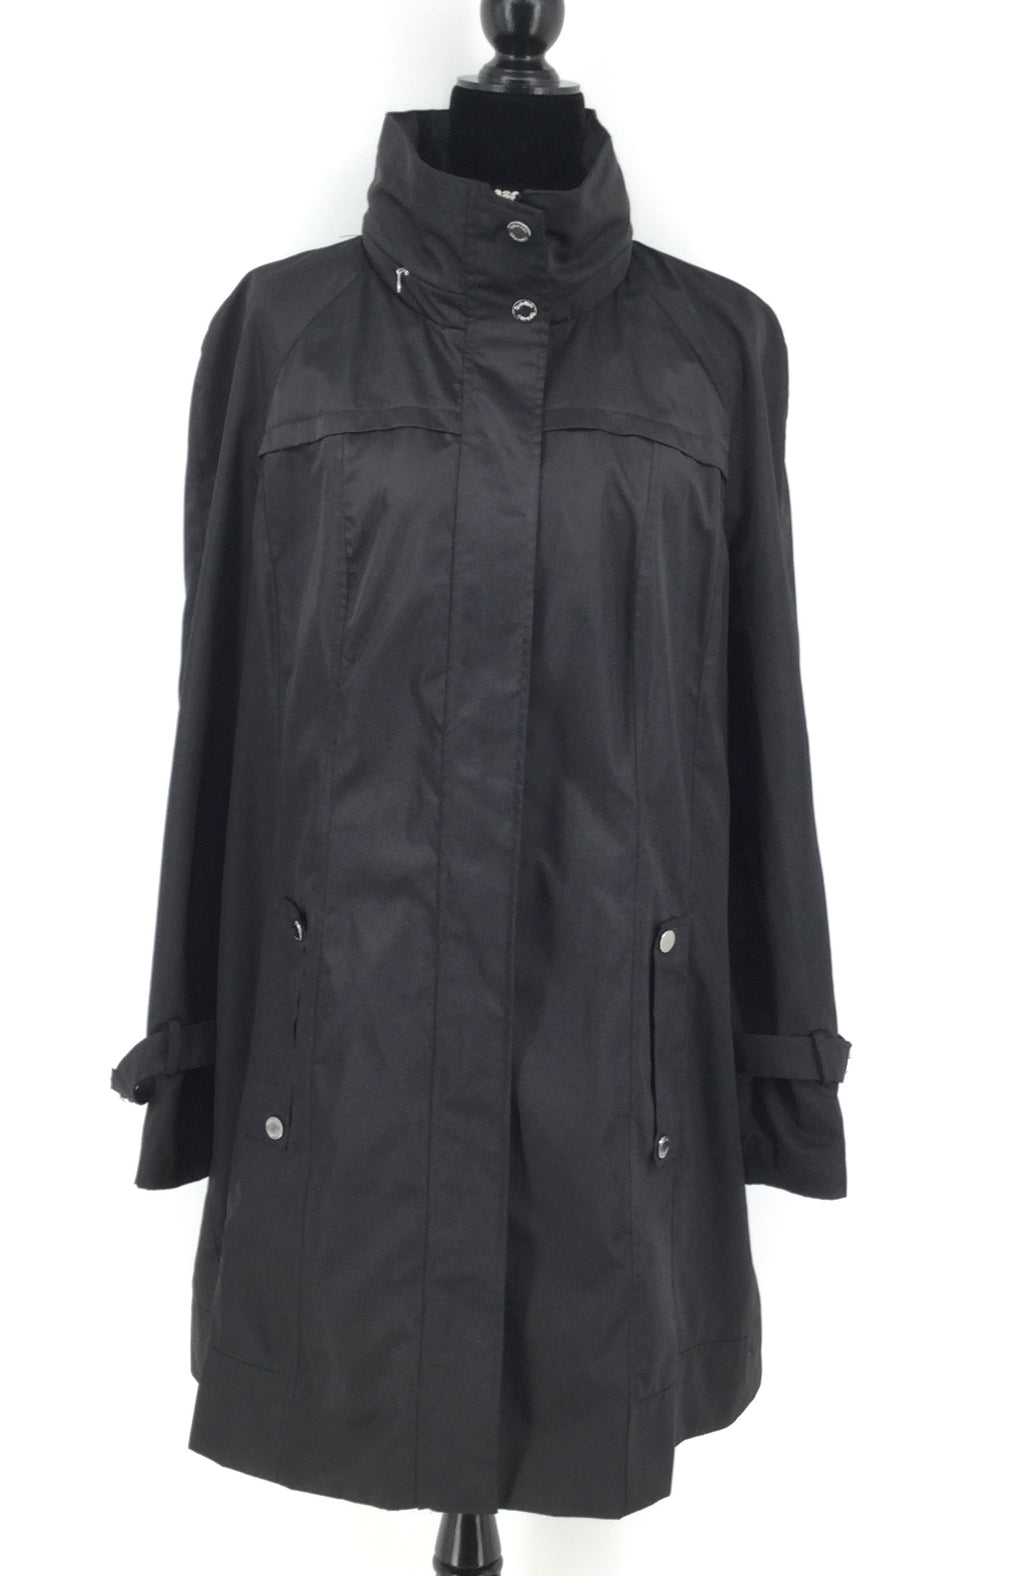 Long Black Calvin Klein Rain Jacket Size:XL